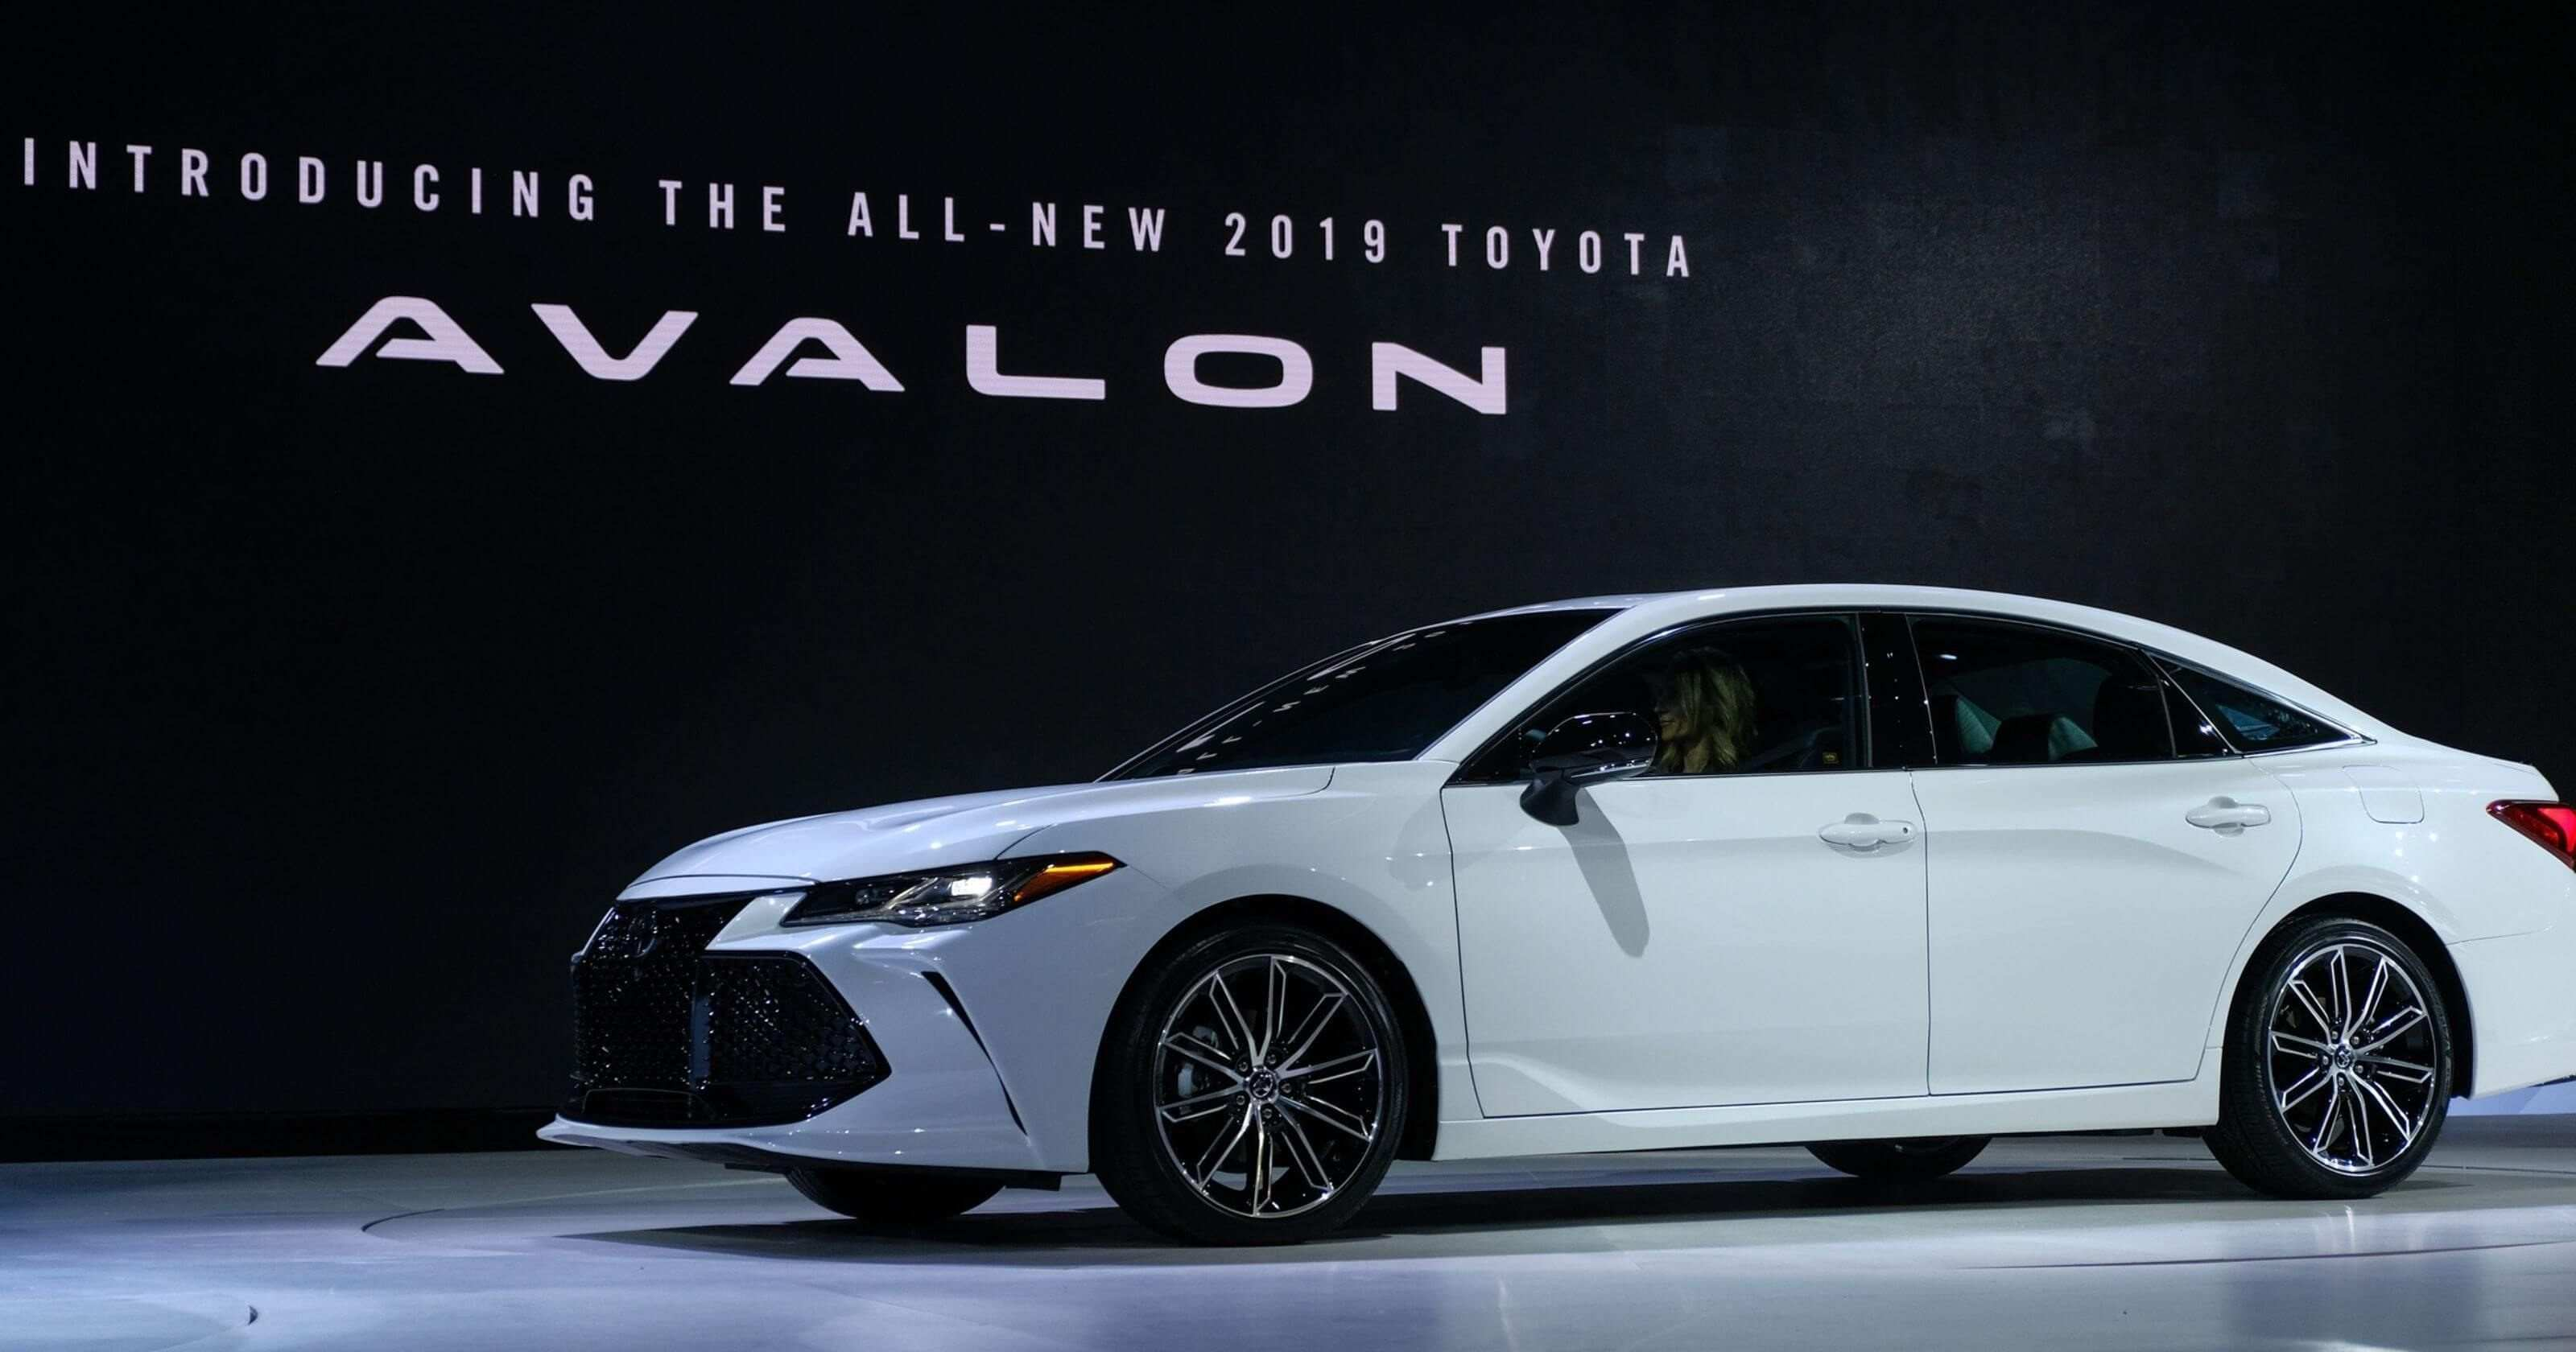 17 Great 2020 Toyota Avalon Redesign Photos with 2020 Toyota Avalon Redesign